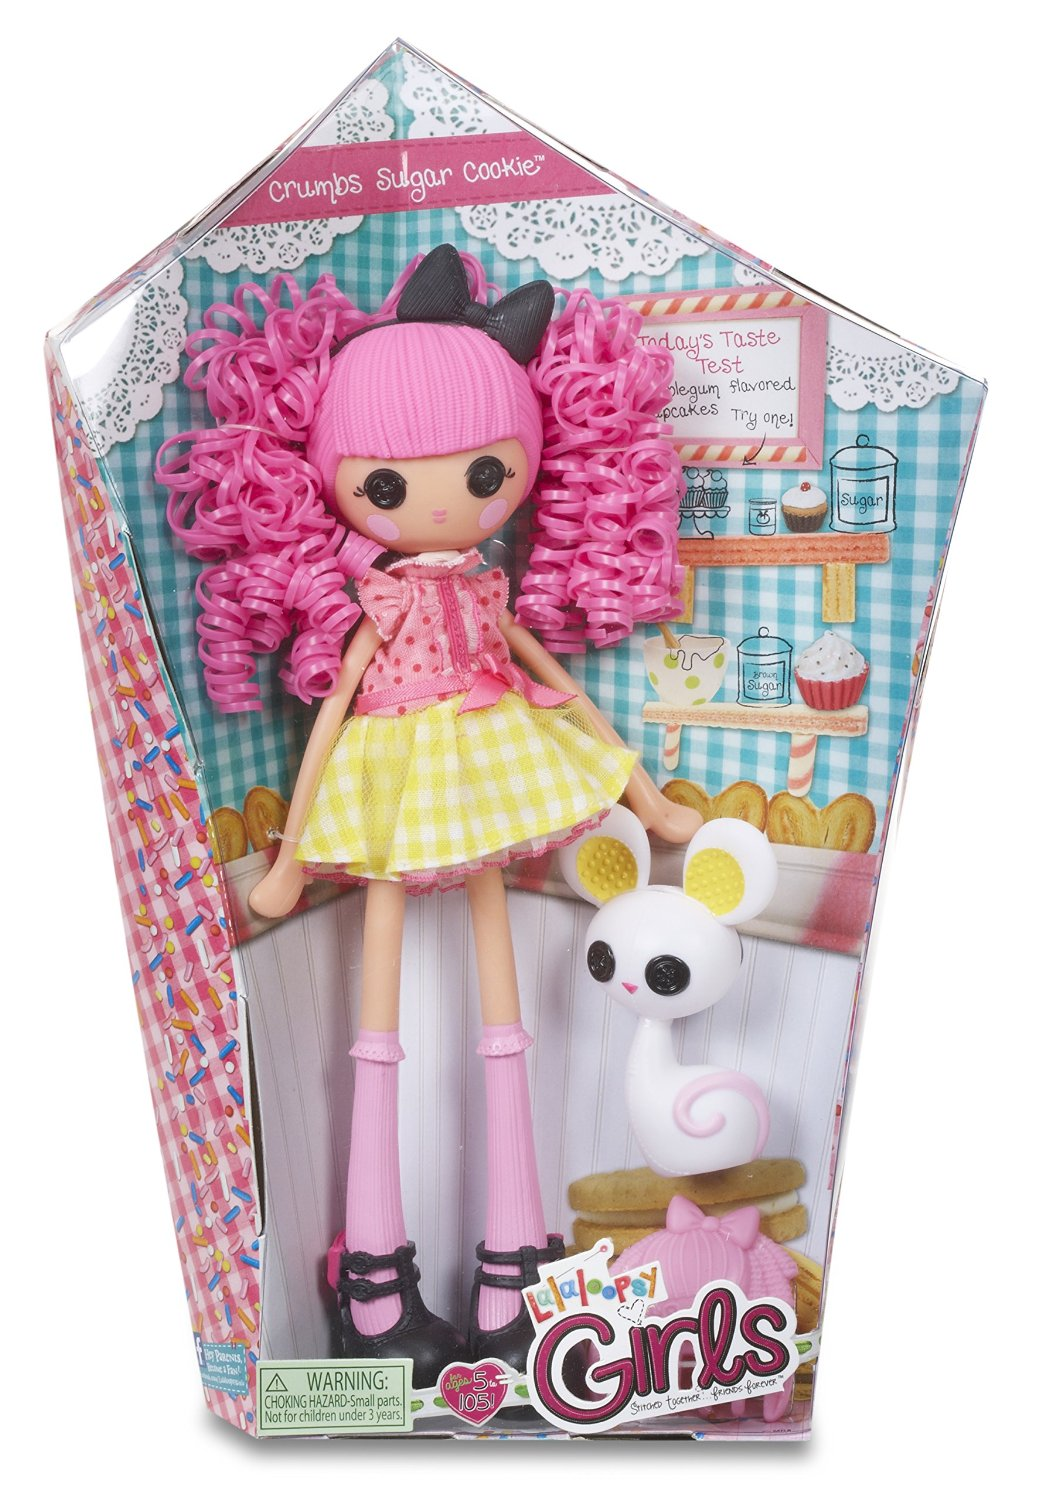 Lalaloopsy Crumbs Sugar Cookie Doll Lalaloopsy Girls Crumbs Sugar